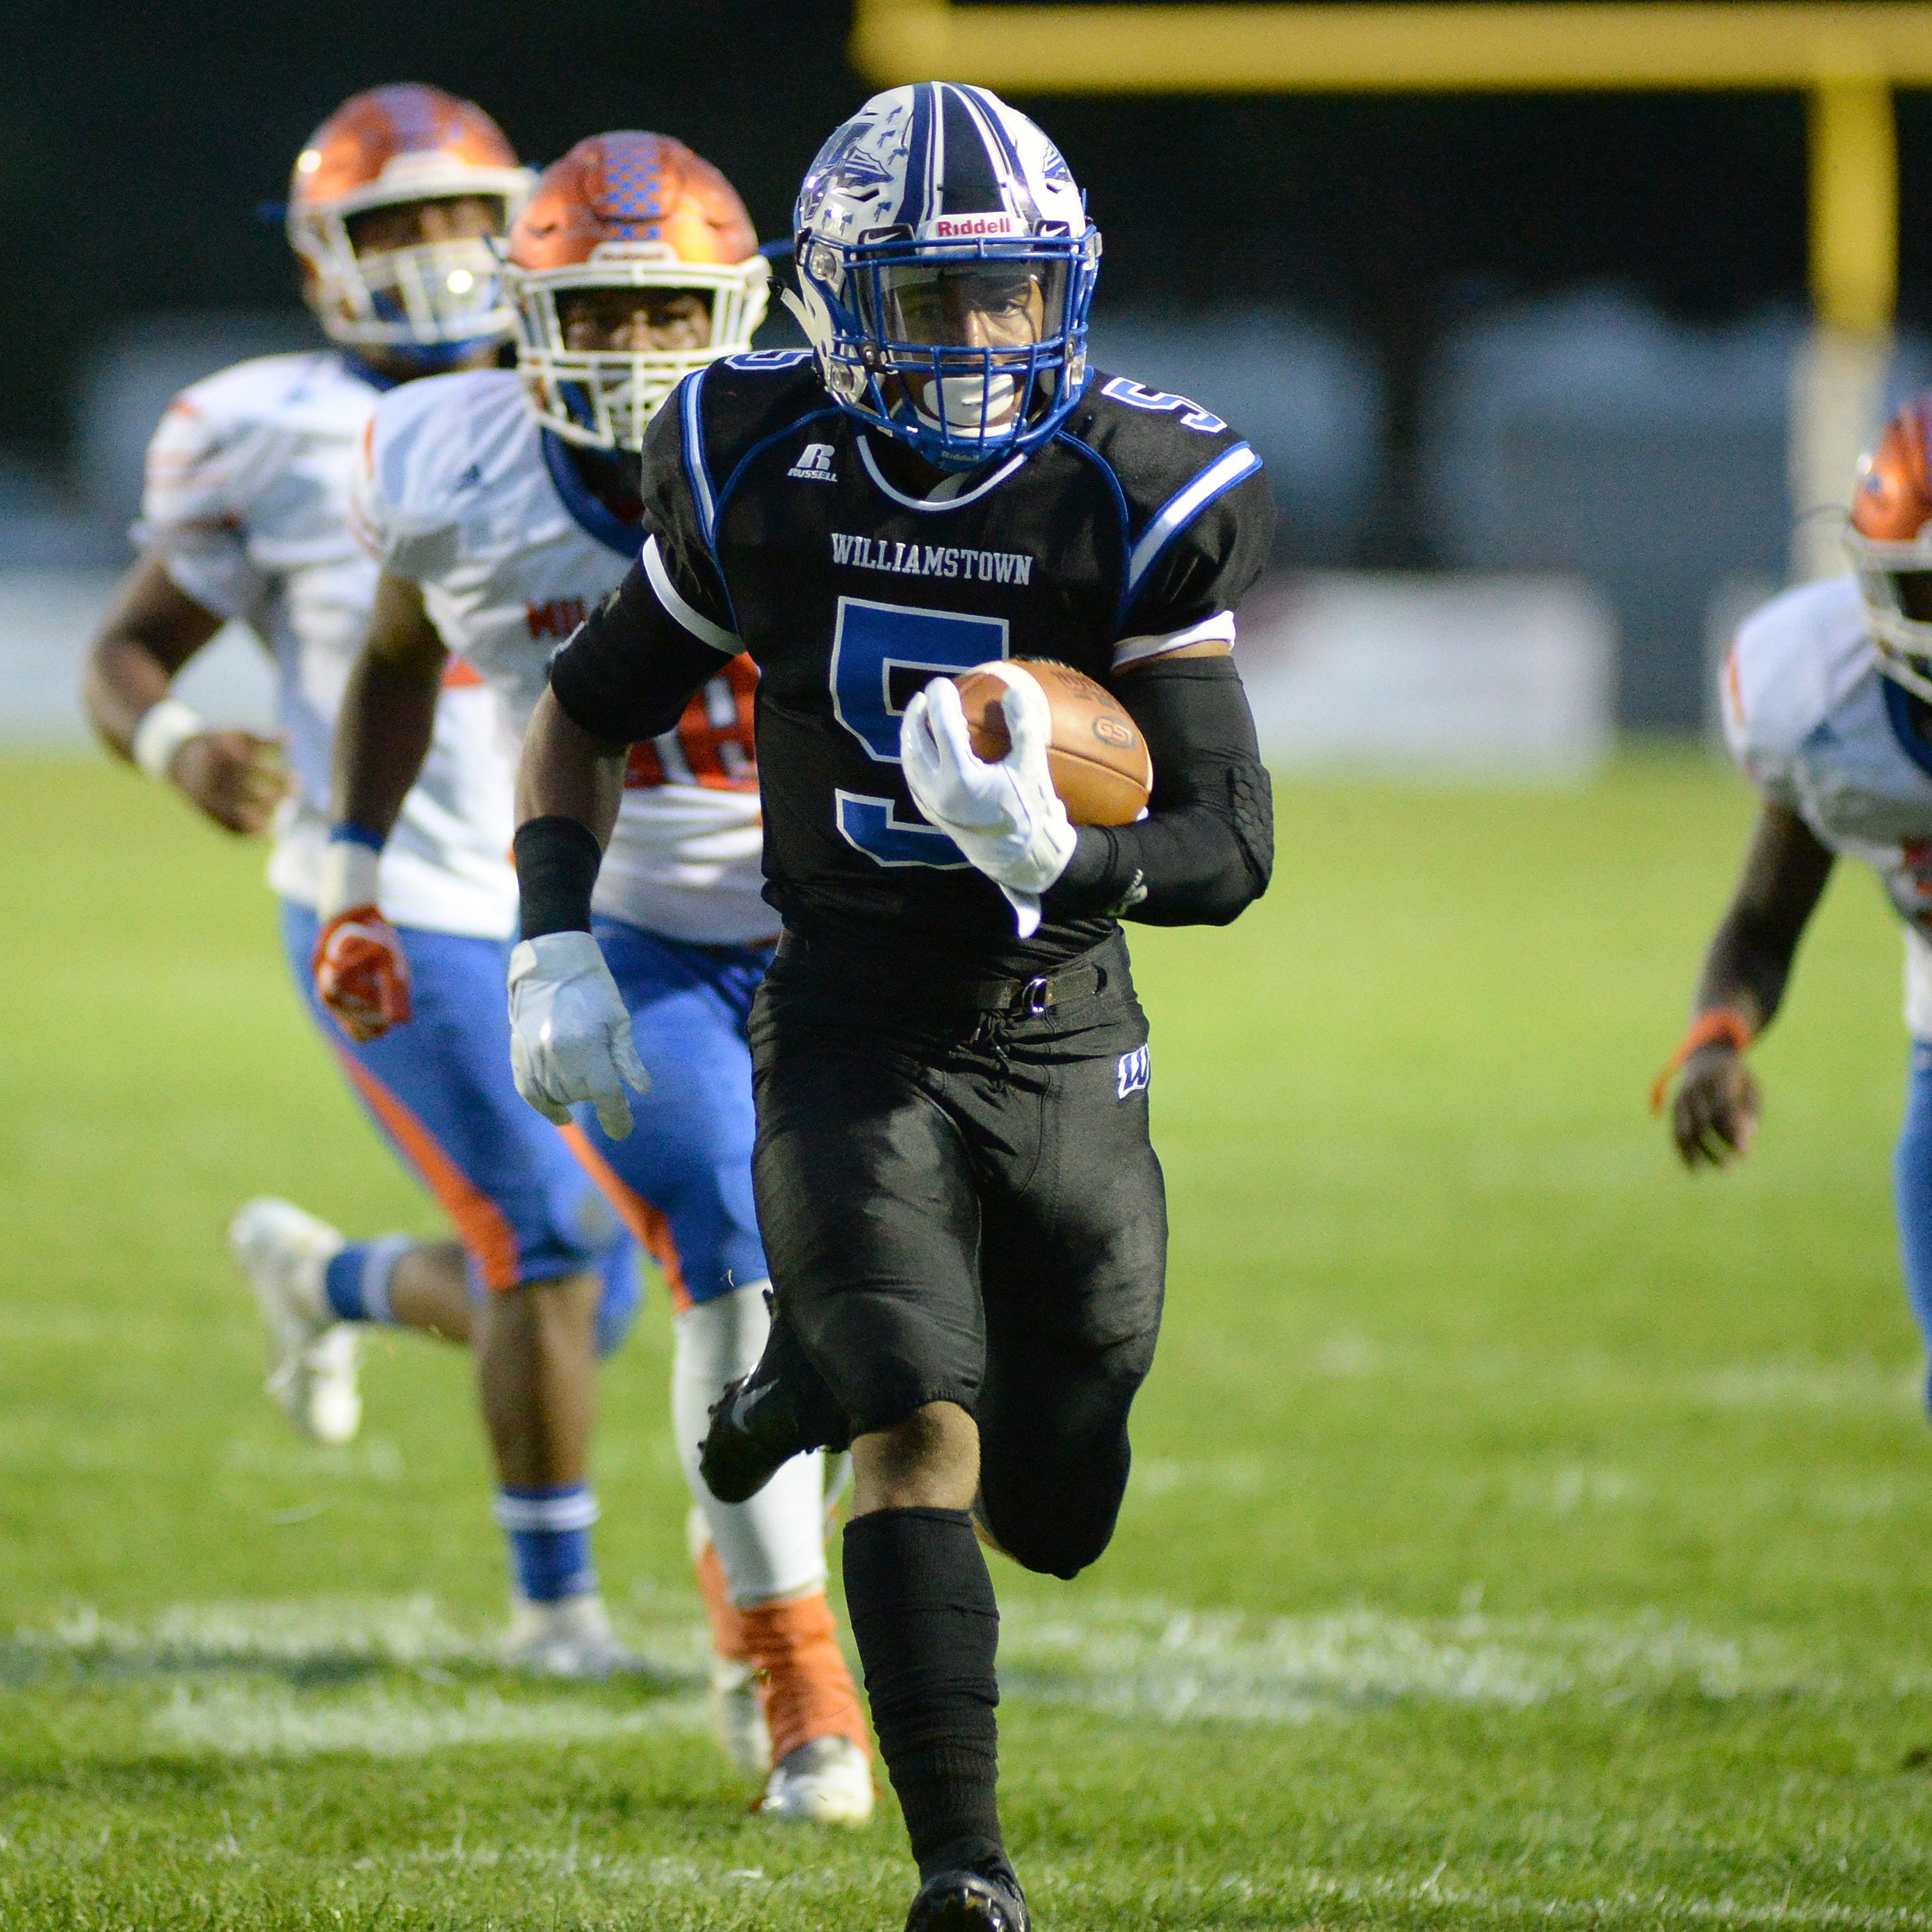 H.S. Football: Millville's offense struggles again in loss to Williamstown